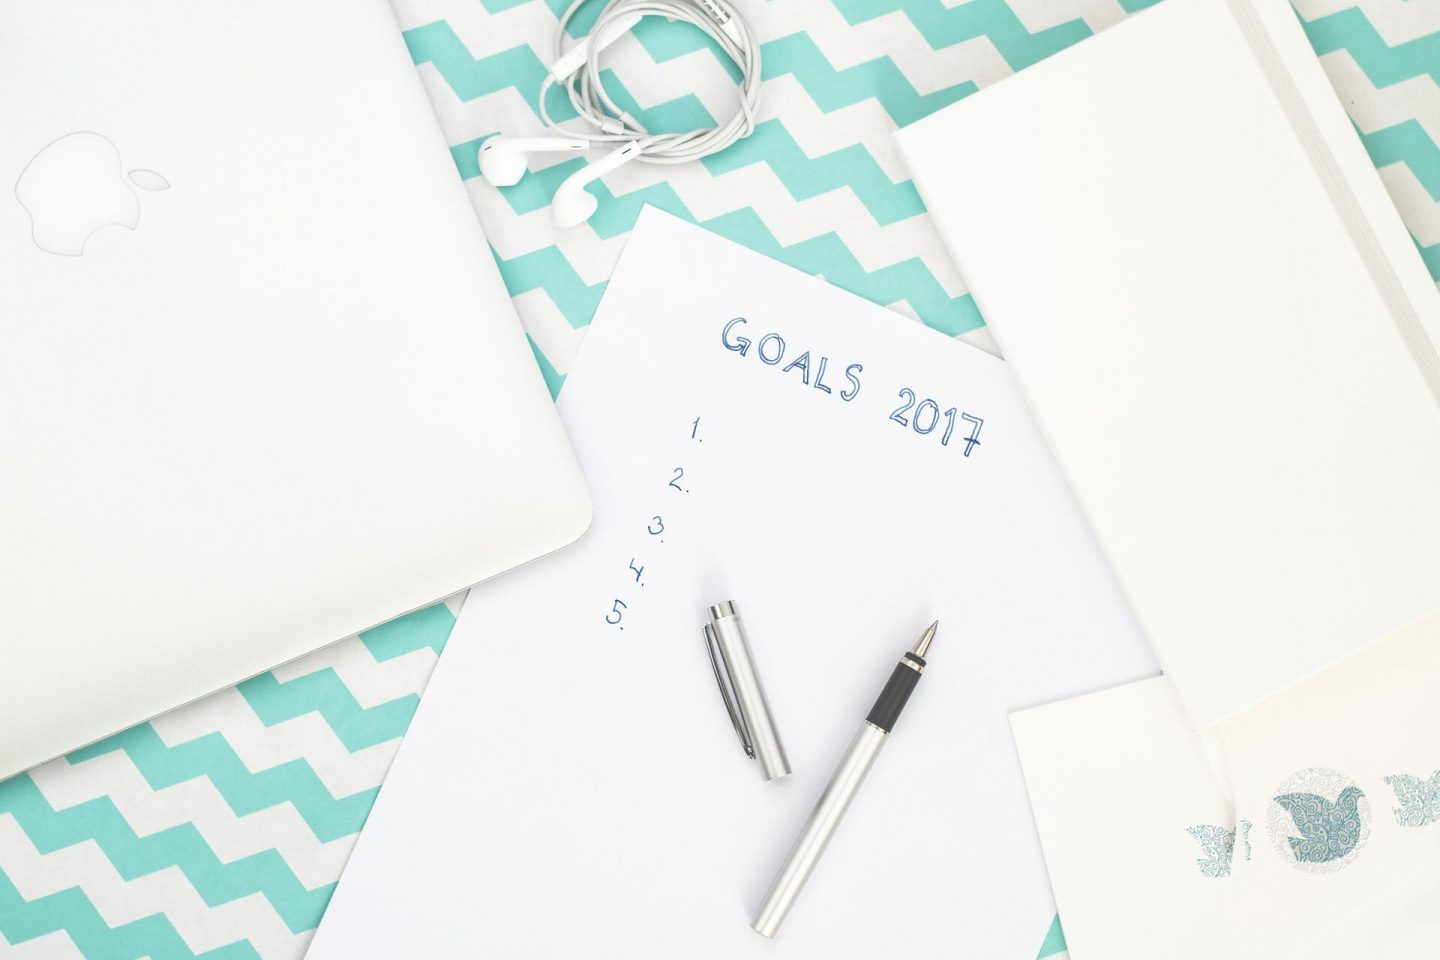 Goals & Sh*t: 17 new year's resolutions for 2017